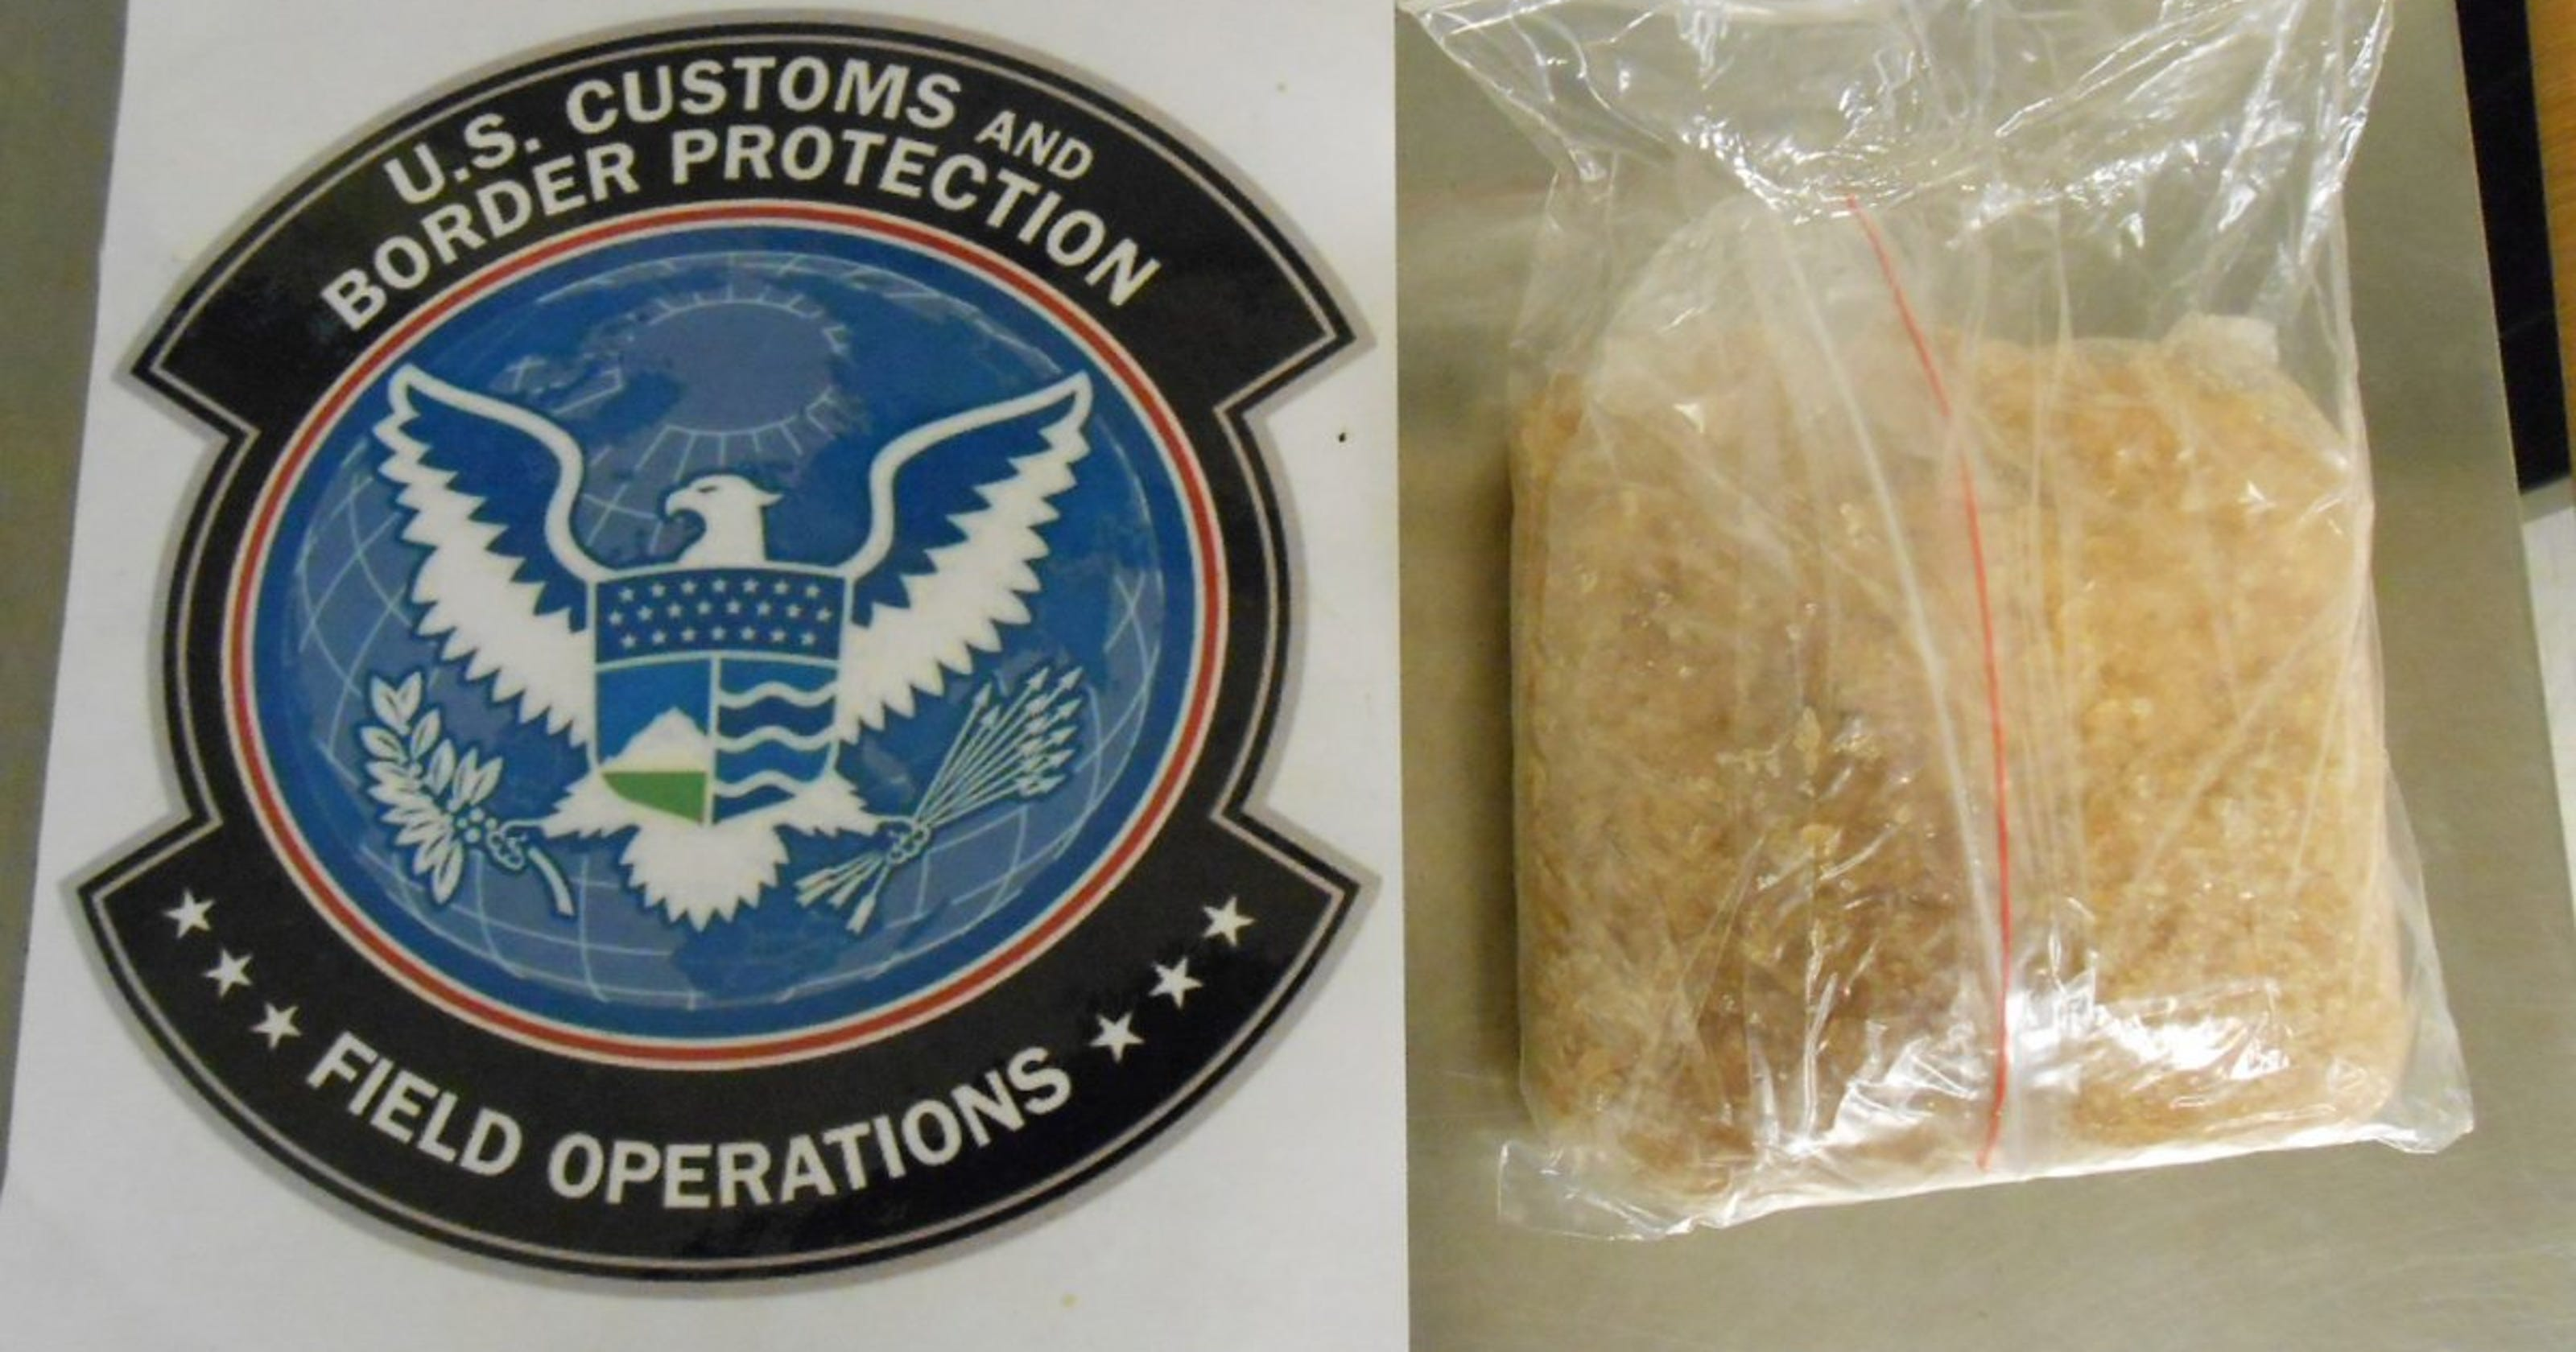 Border protection seizes massive drug shipments from China in Cincinnati